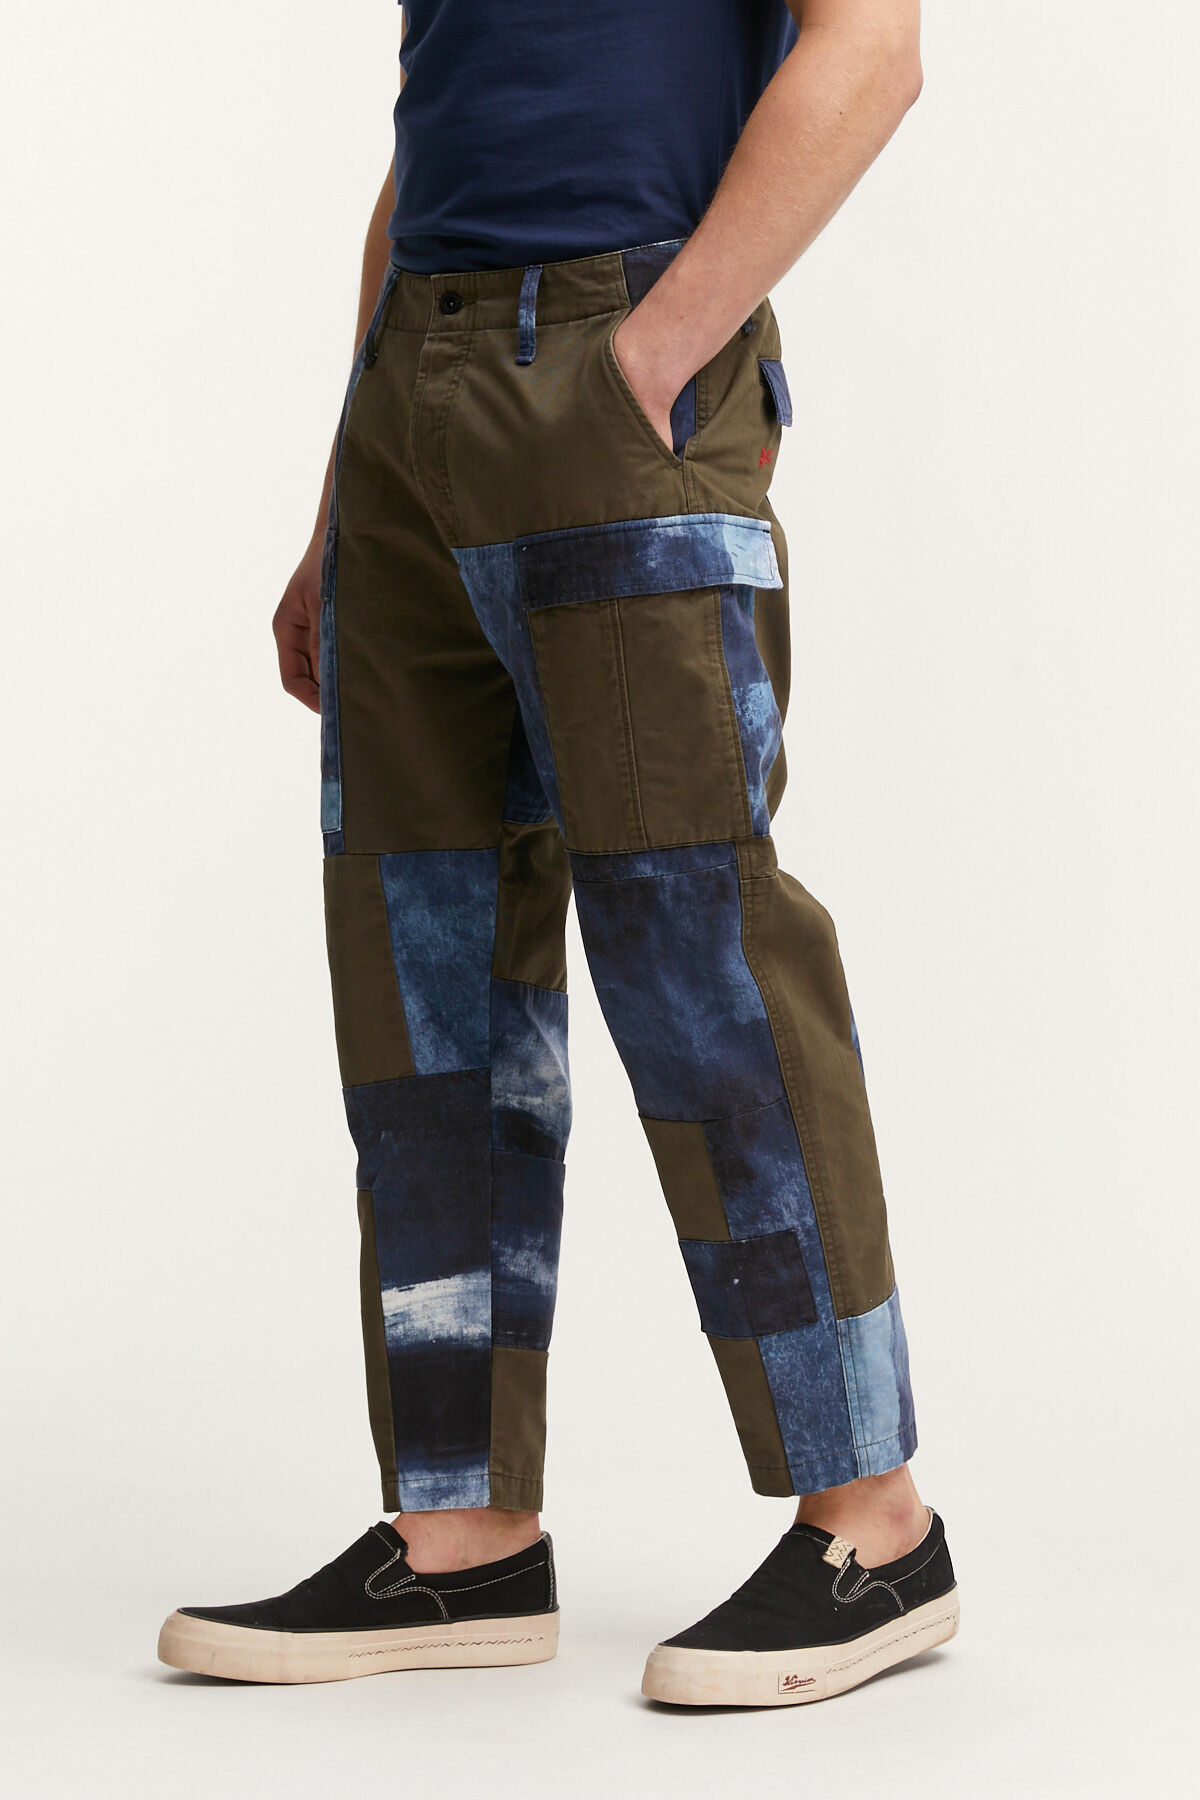 PATCHWORK PANT Digitally Printed Cotton - Regular Fit